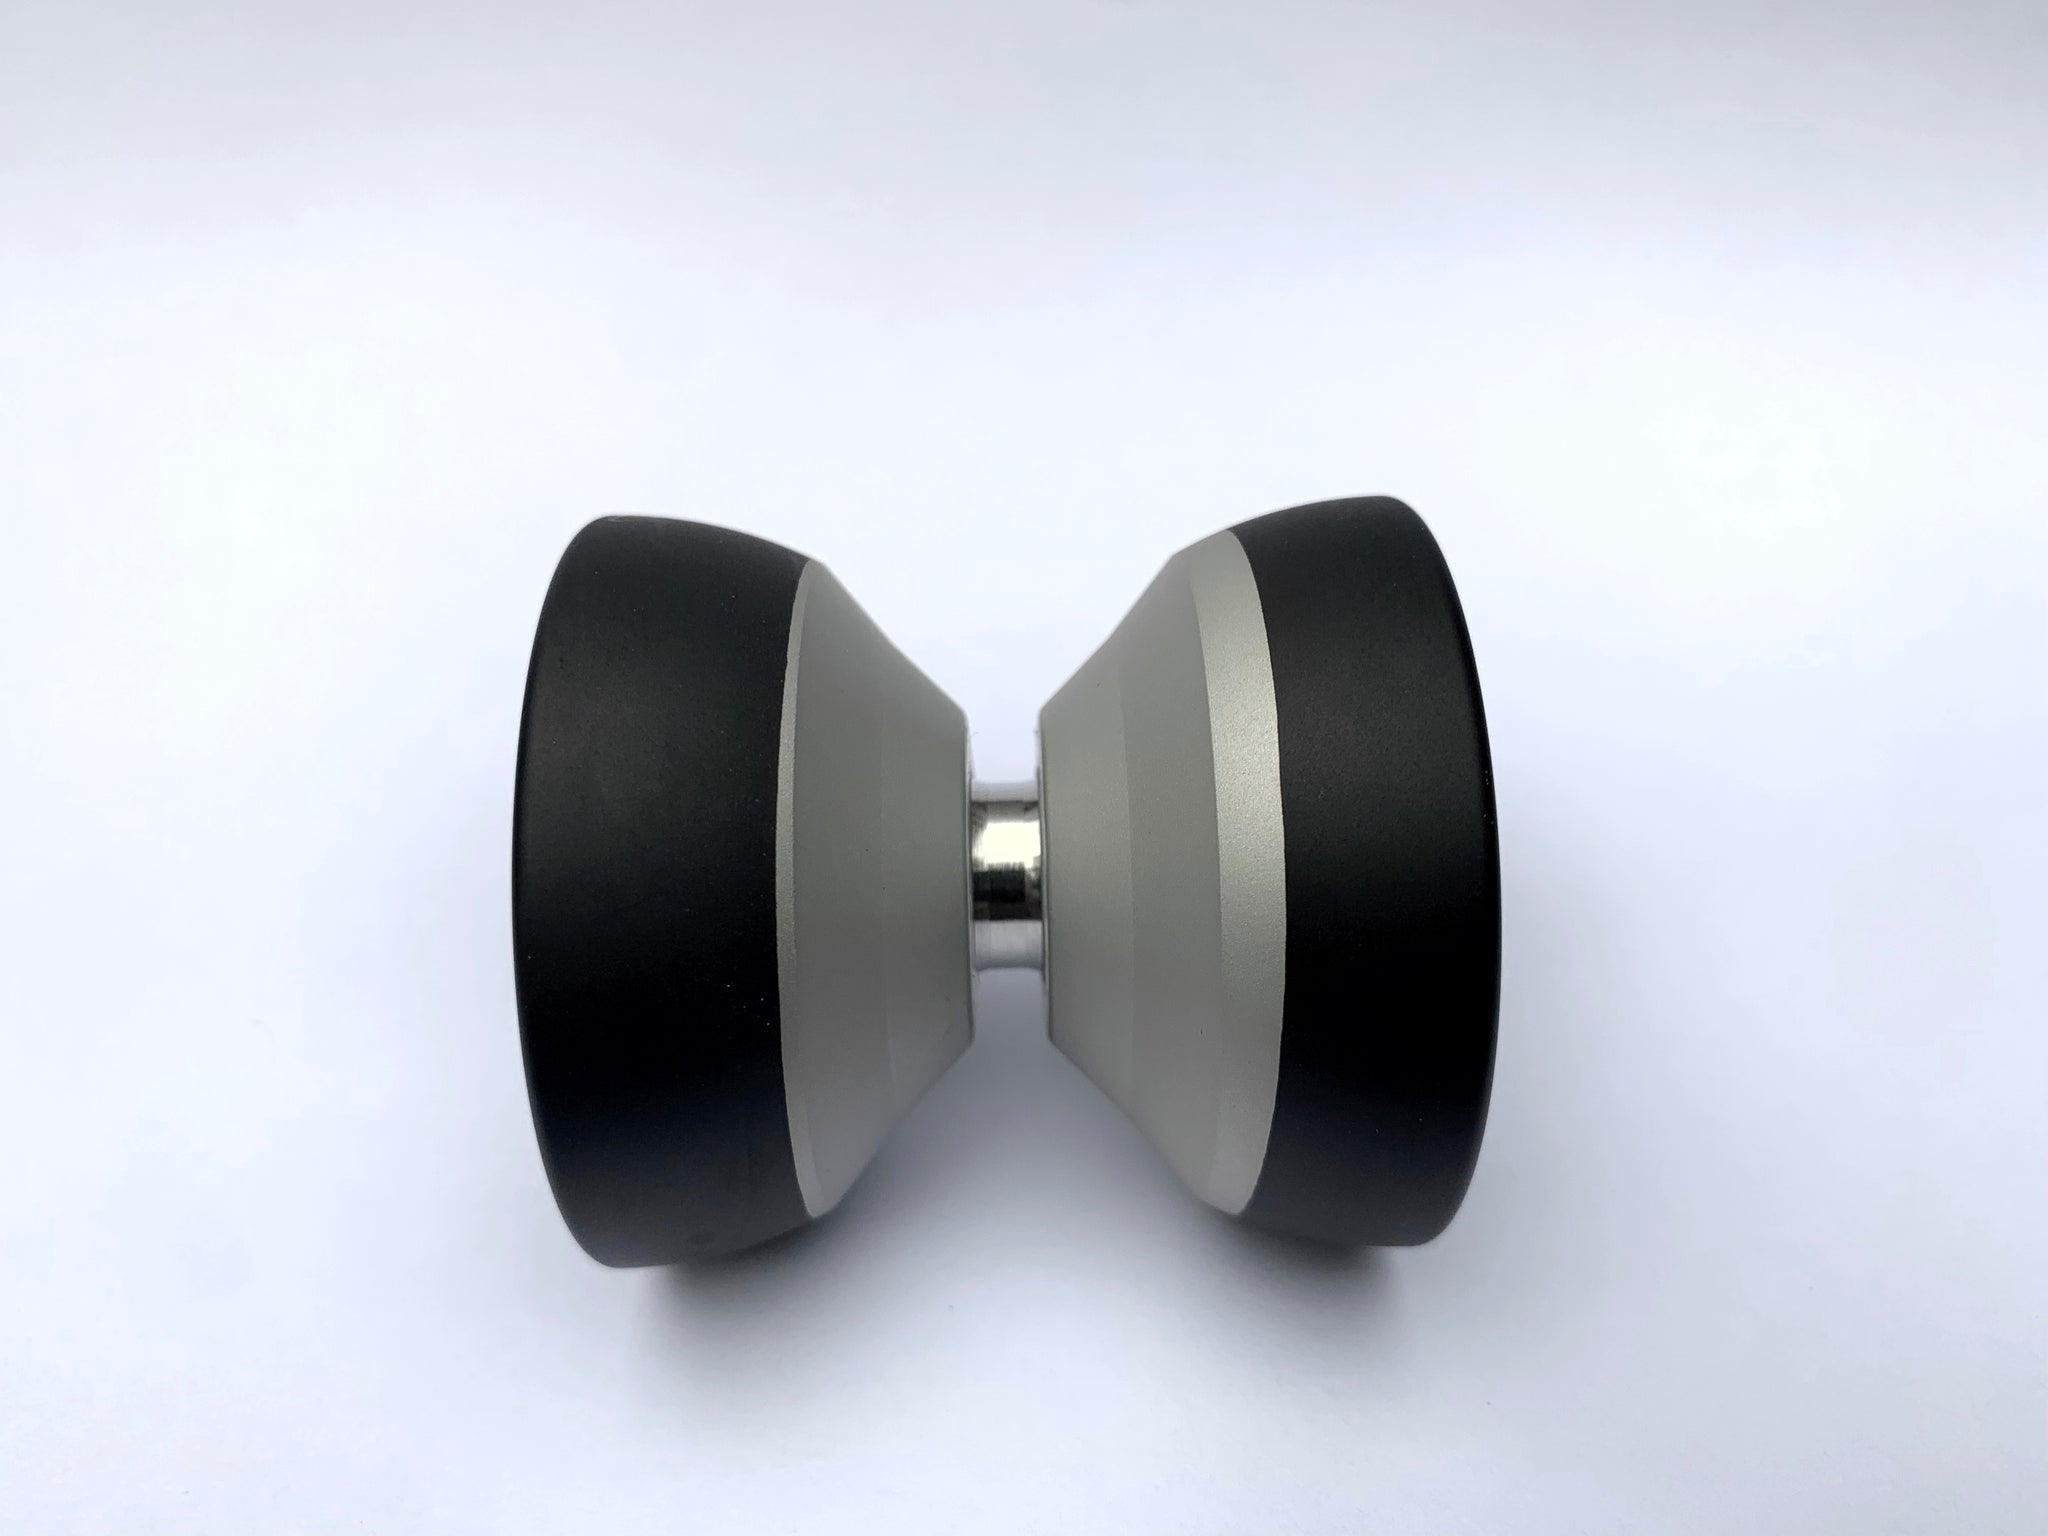 Black/Silver Rim Dipped Qubit